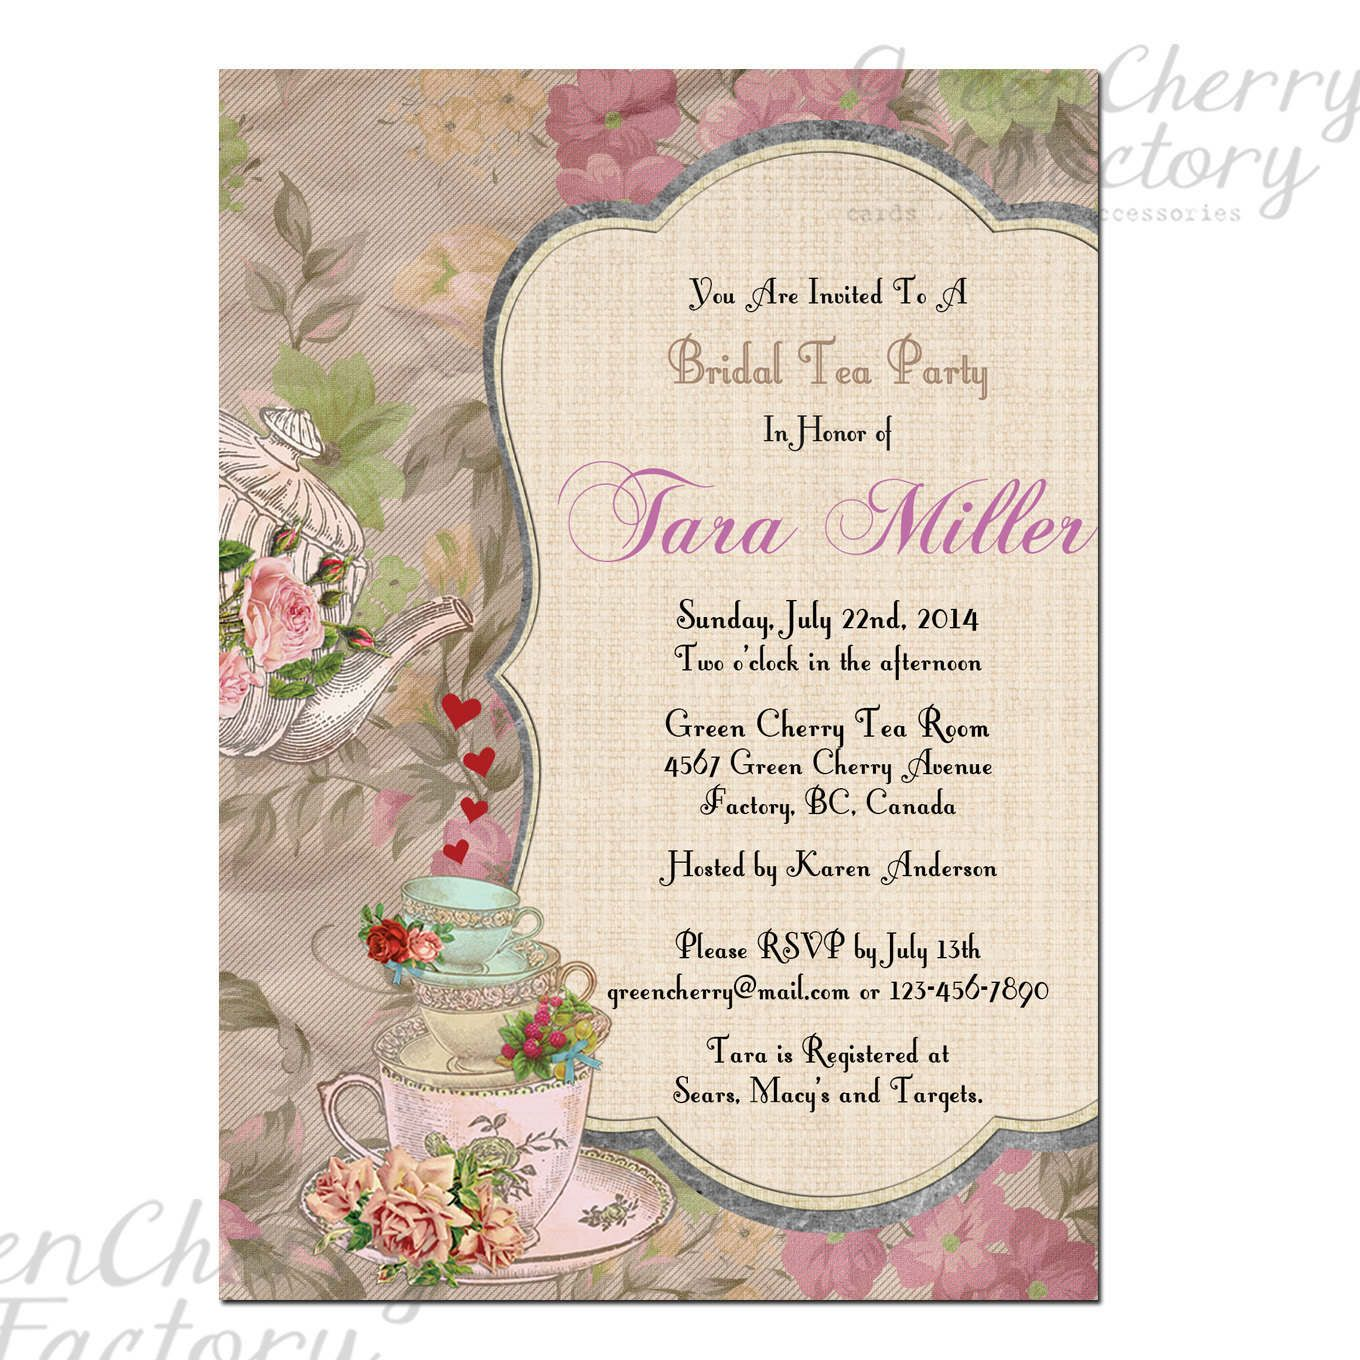 Tea Party Invitation Template | High Tea Party Invitations Free Download.  Get This Nice Party